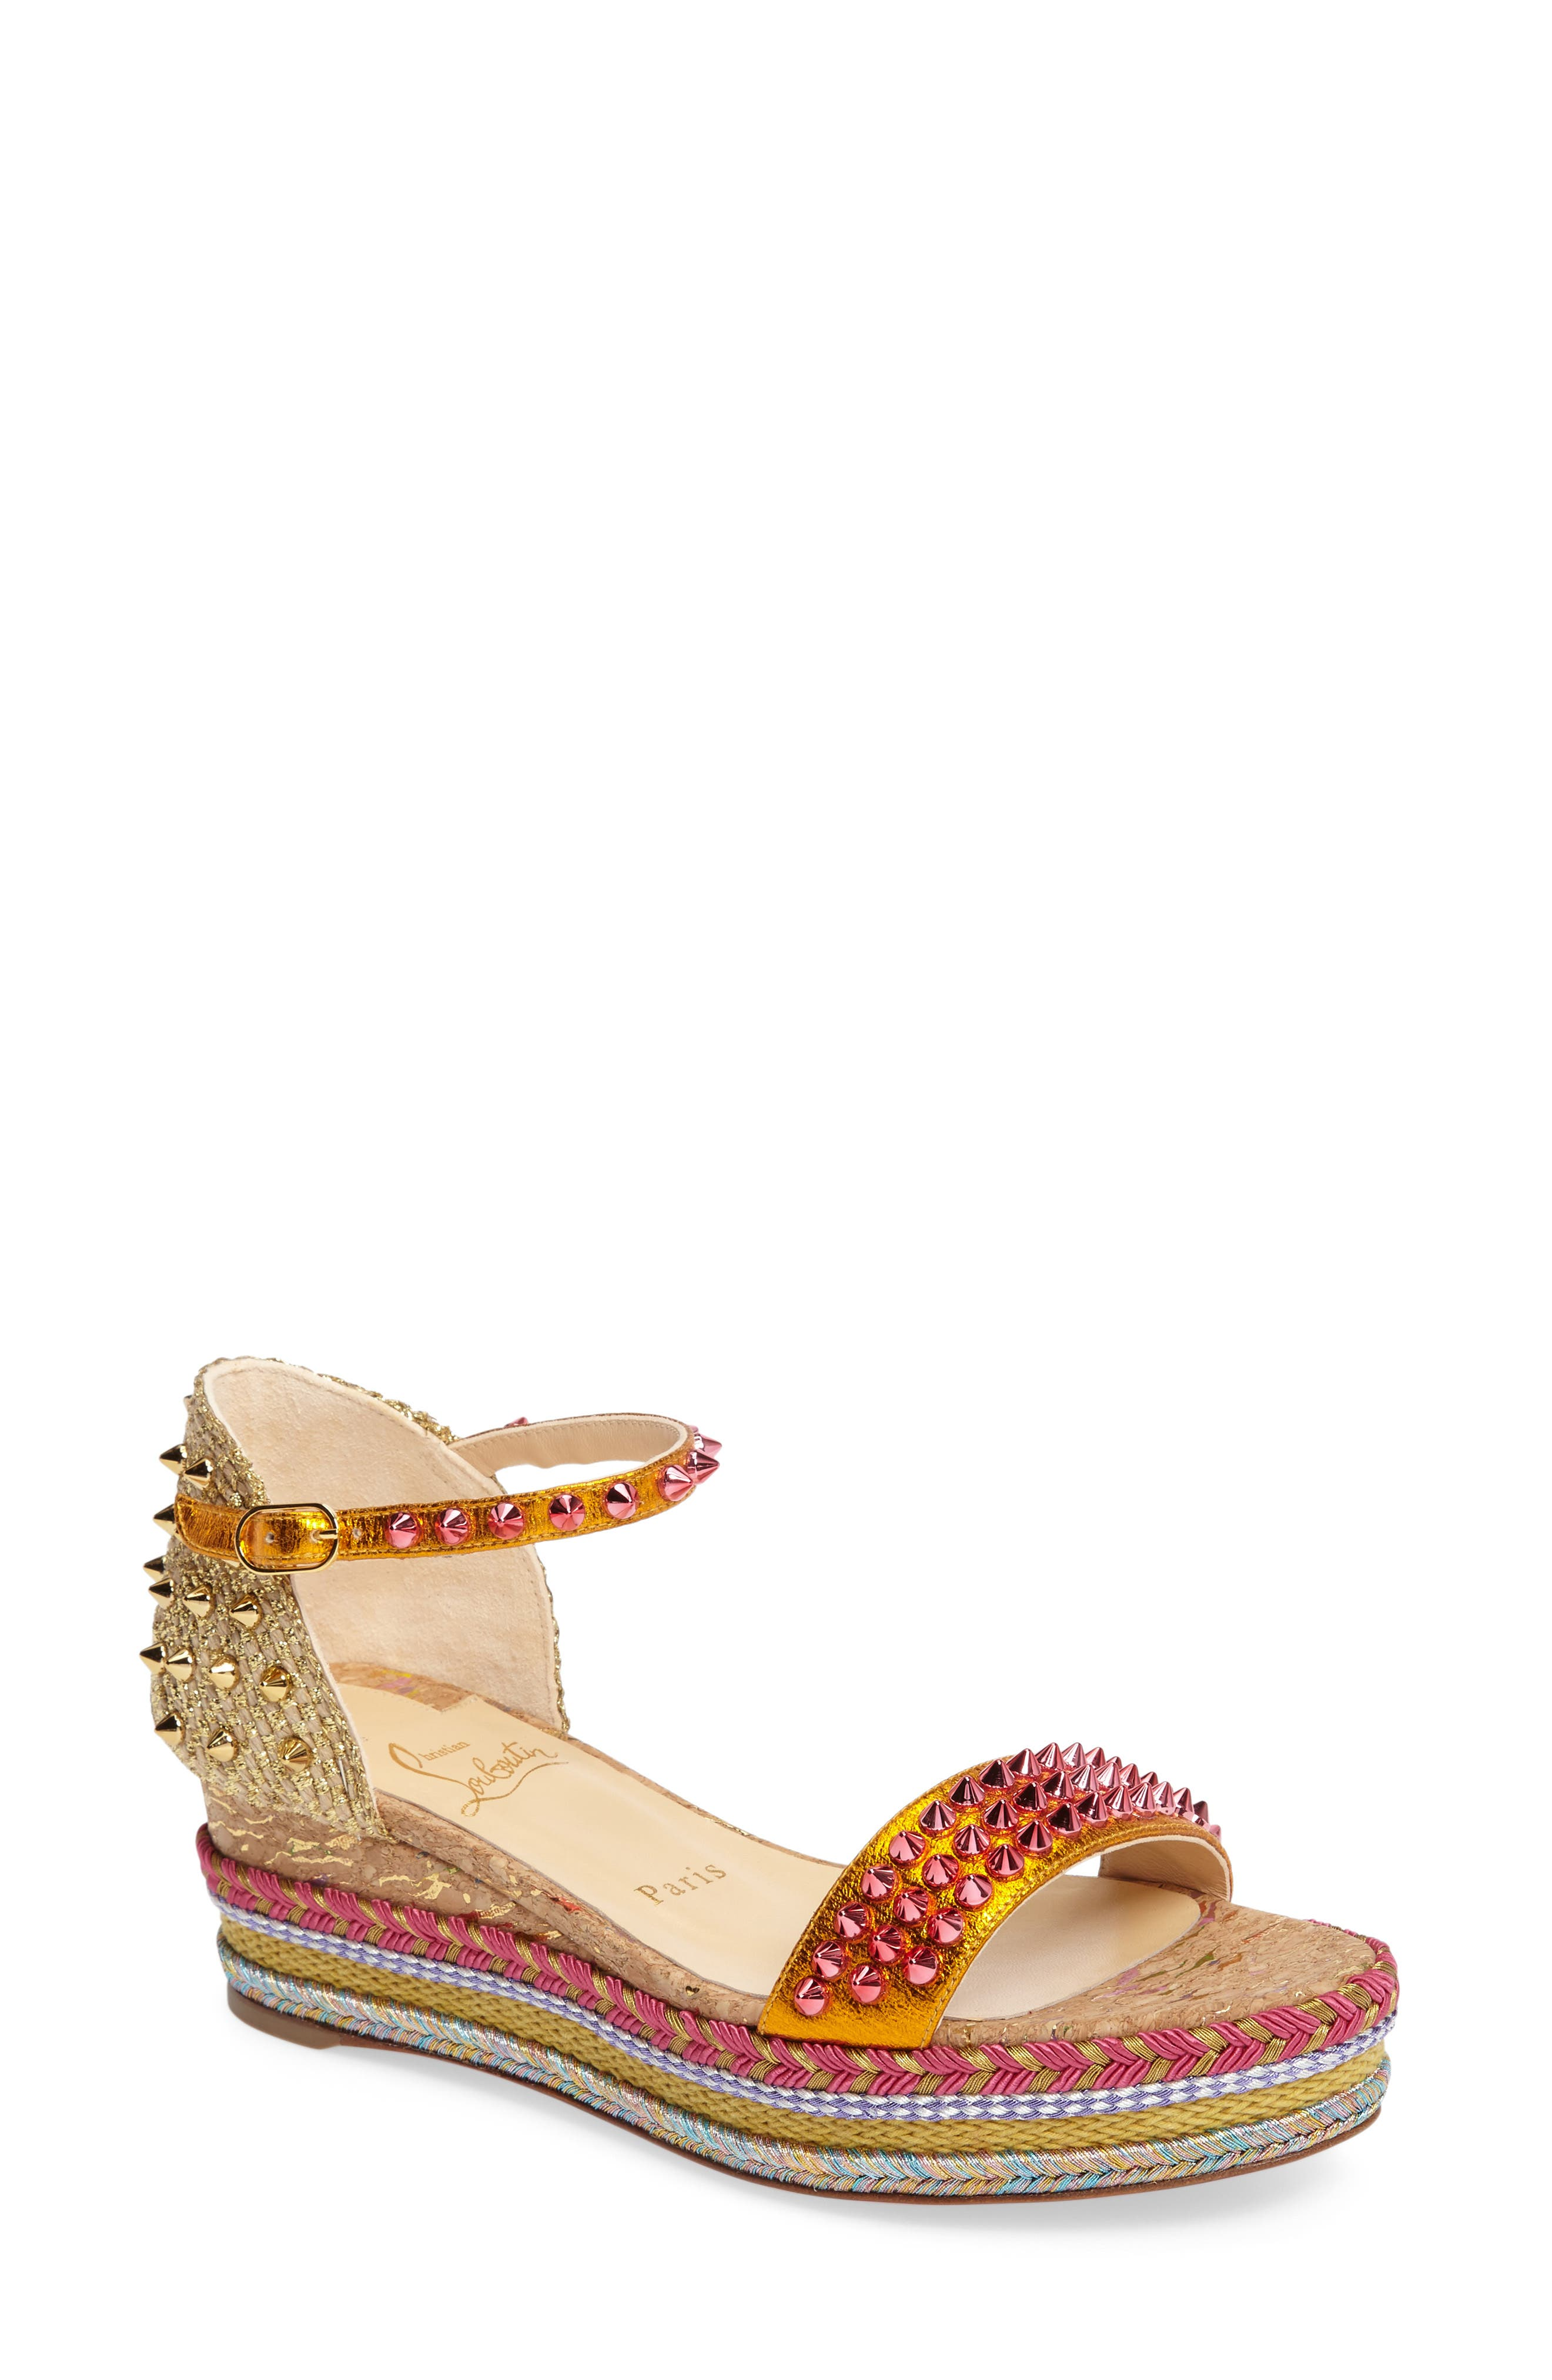 Madmonica Espadrille Platform Sandal,                         Main,                         color, Orange Multi Leather